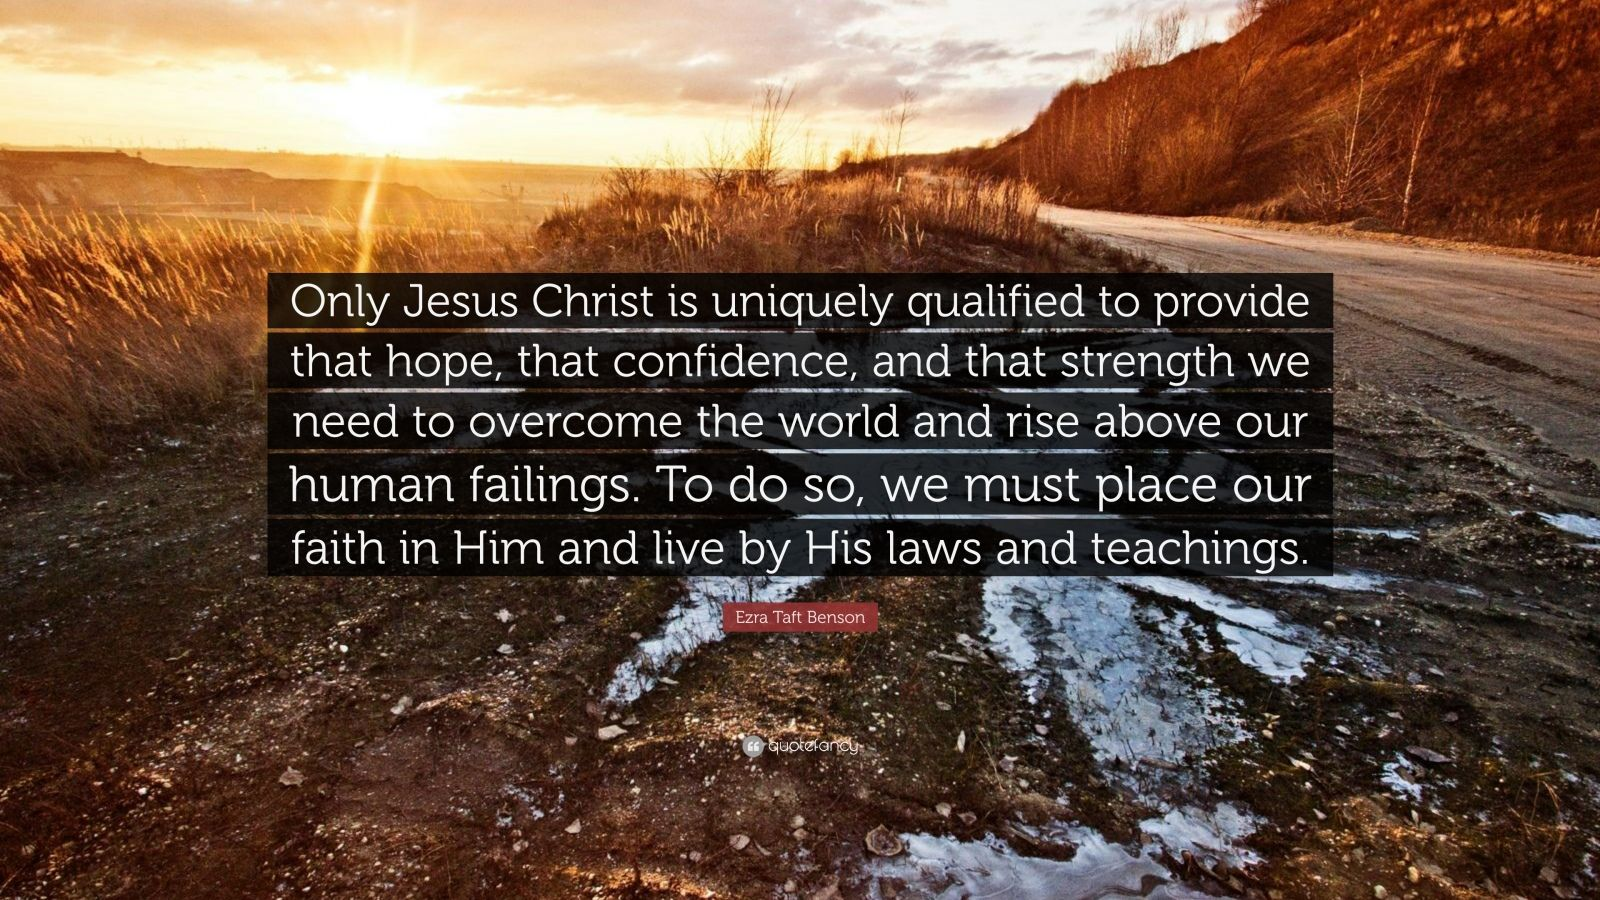 """Ezra Taft Benson Quote: """"Only Jesus Christ is uniquely qualified to provide that hope, that confidence, and that strength we need to overcome the world and rise above our human failings. To do so, we must place our faith in Him and live by His laws and teachings."""""""